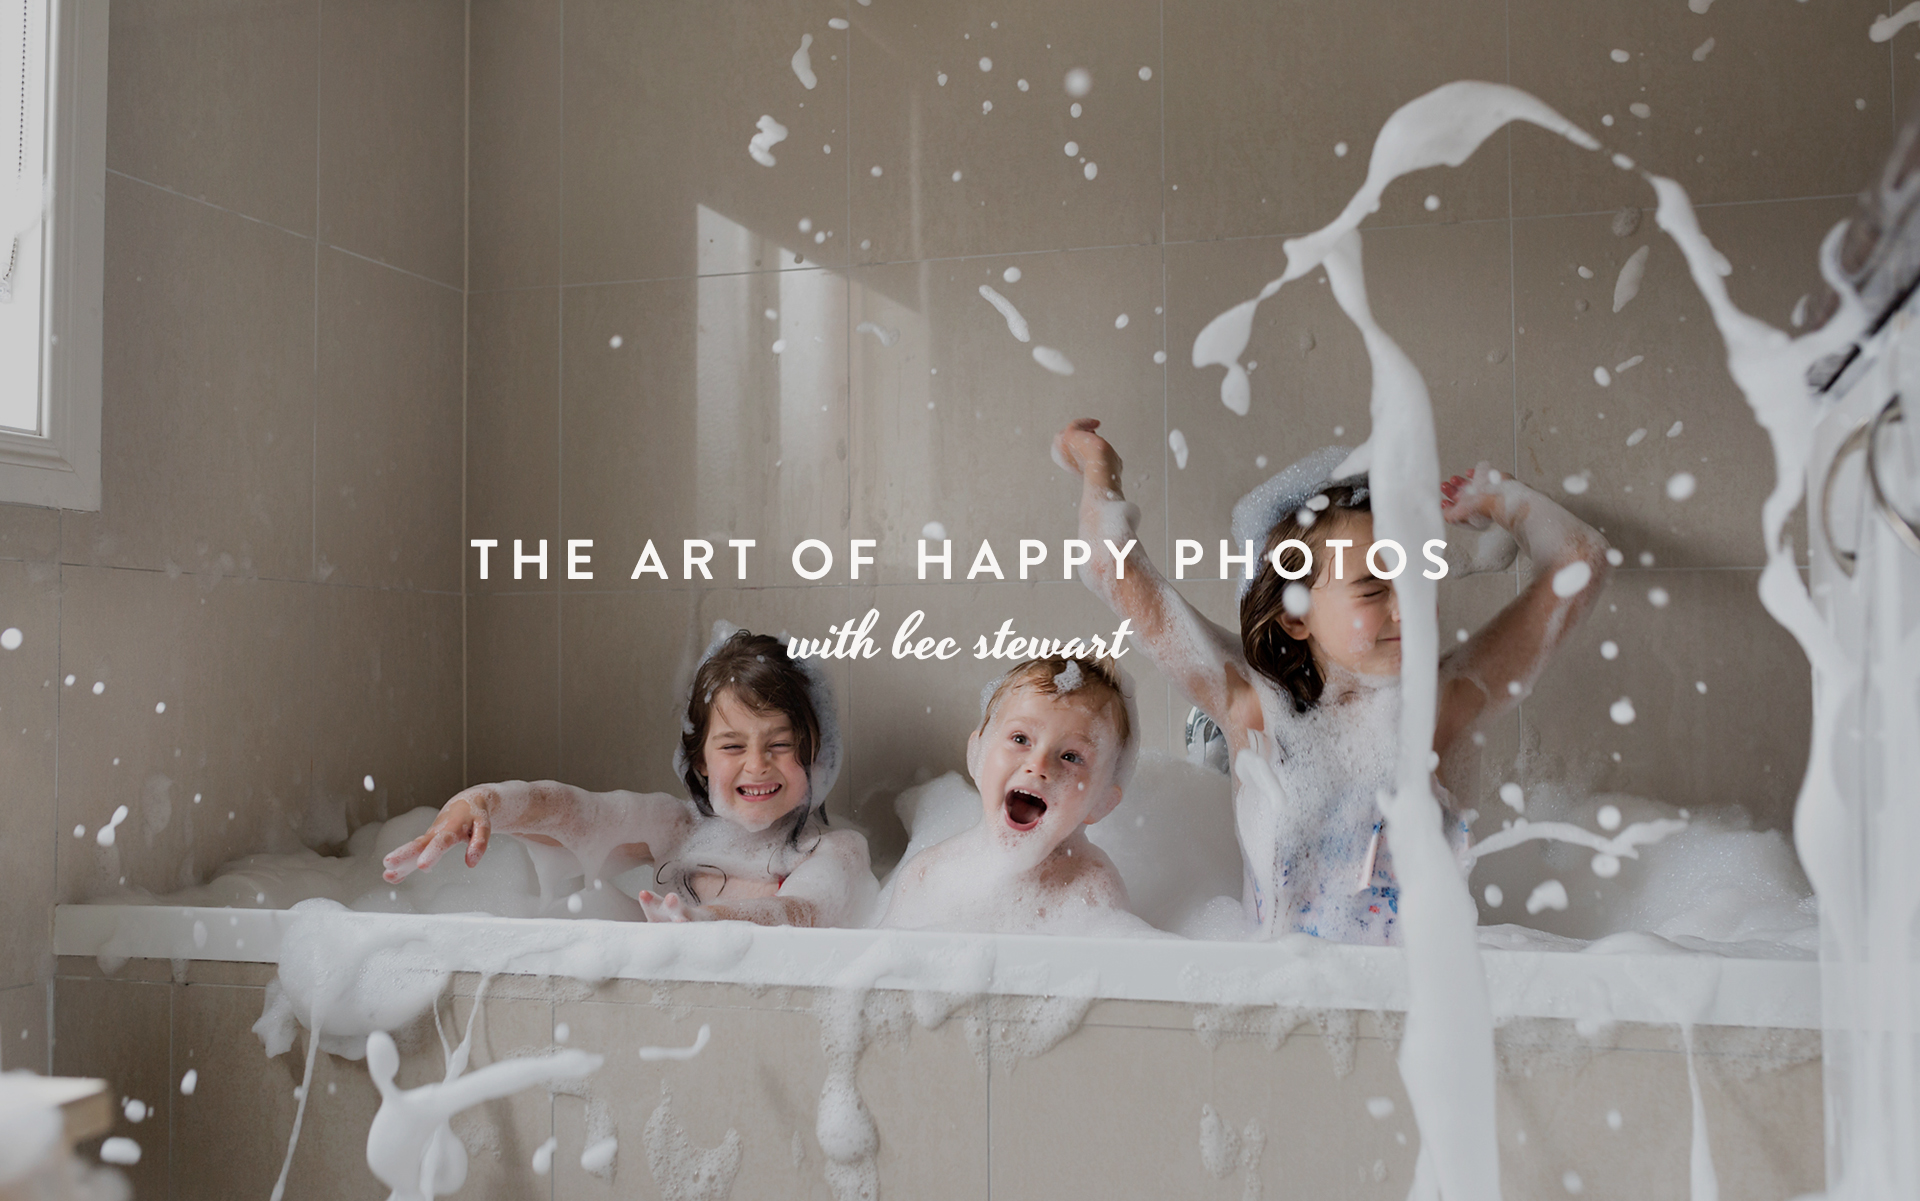 The Art of Happy Photos with Bec Stewart